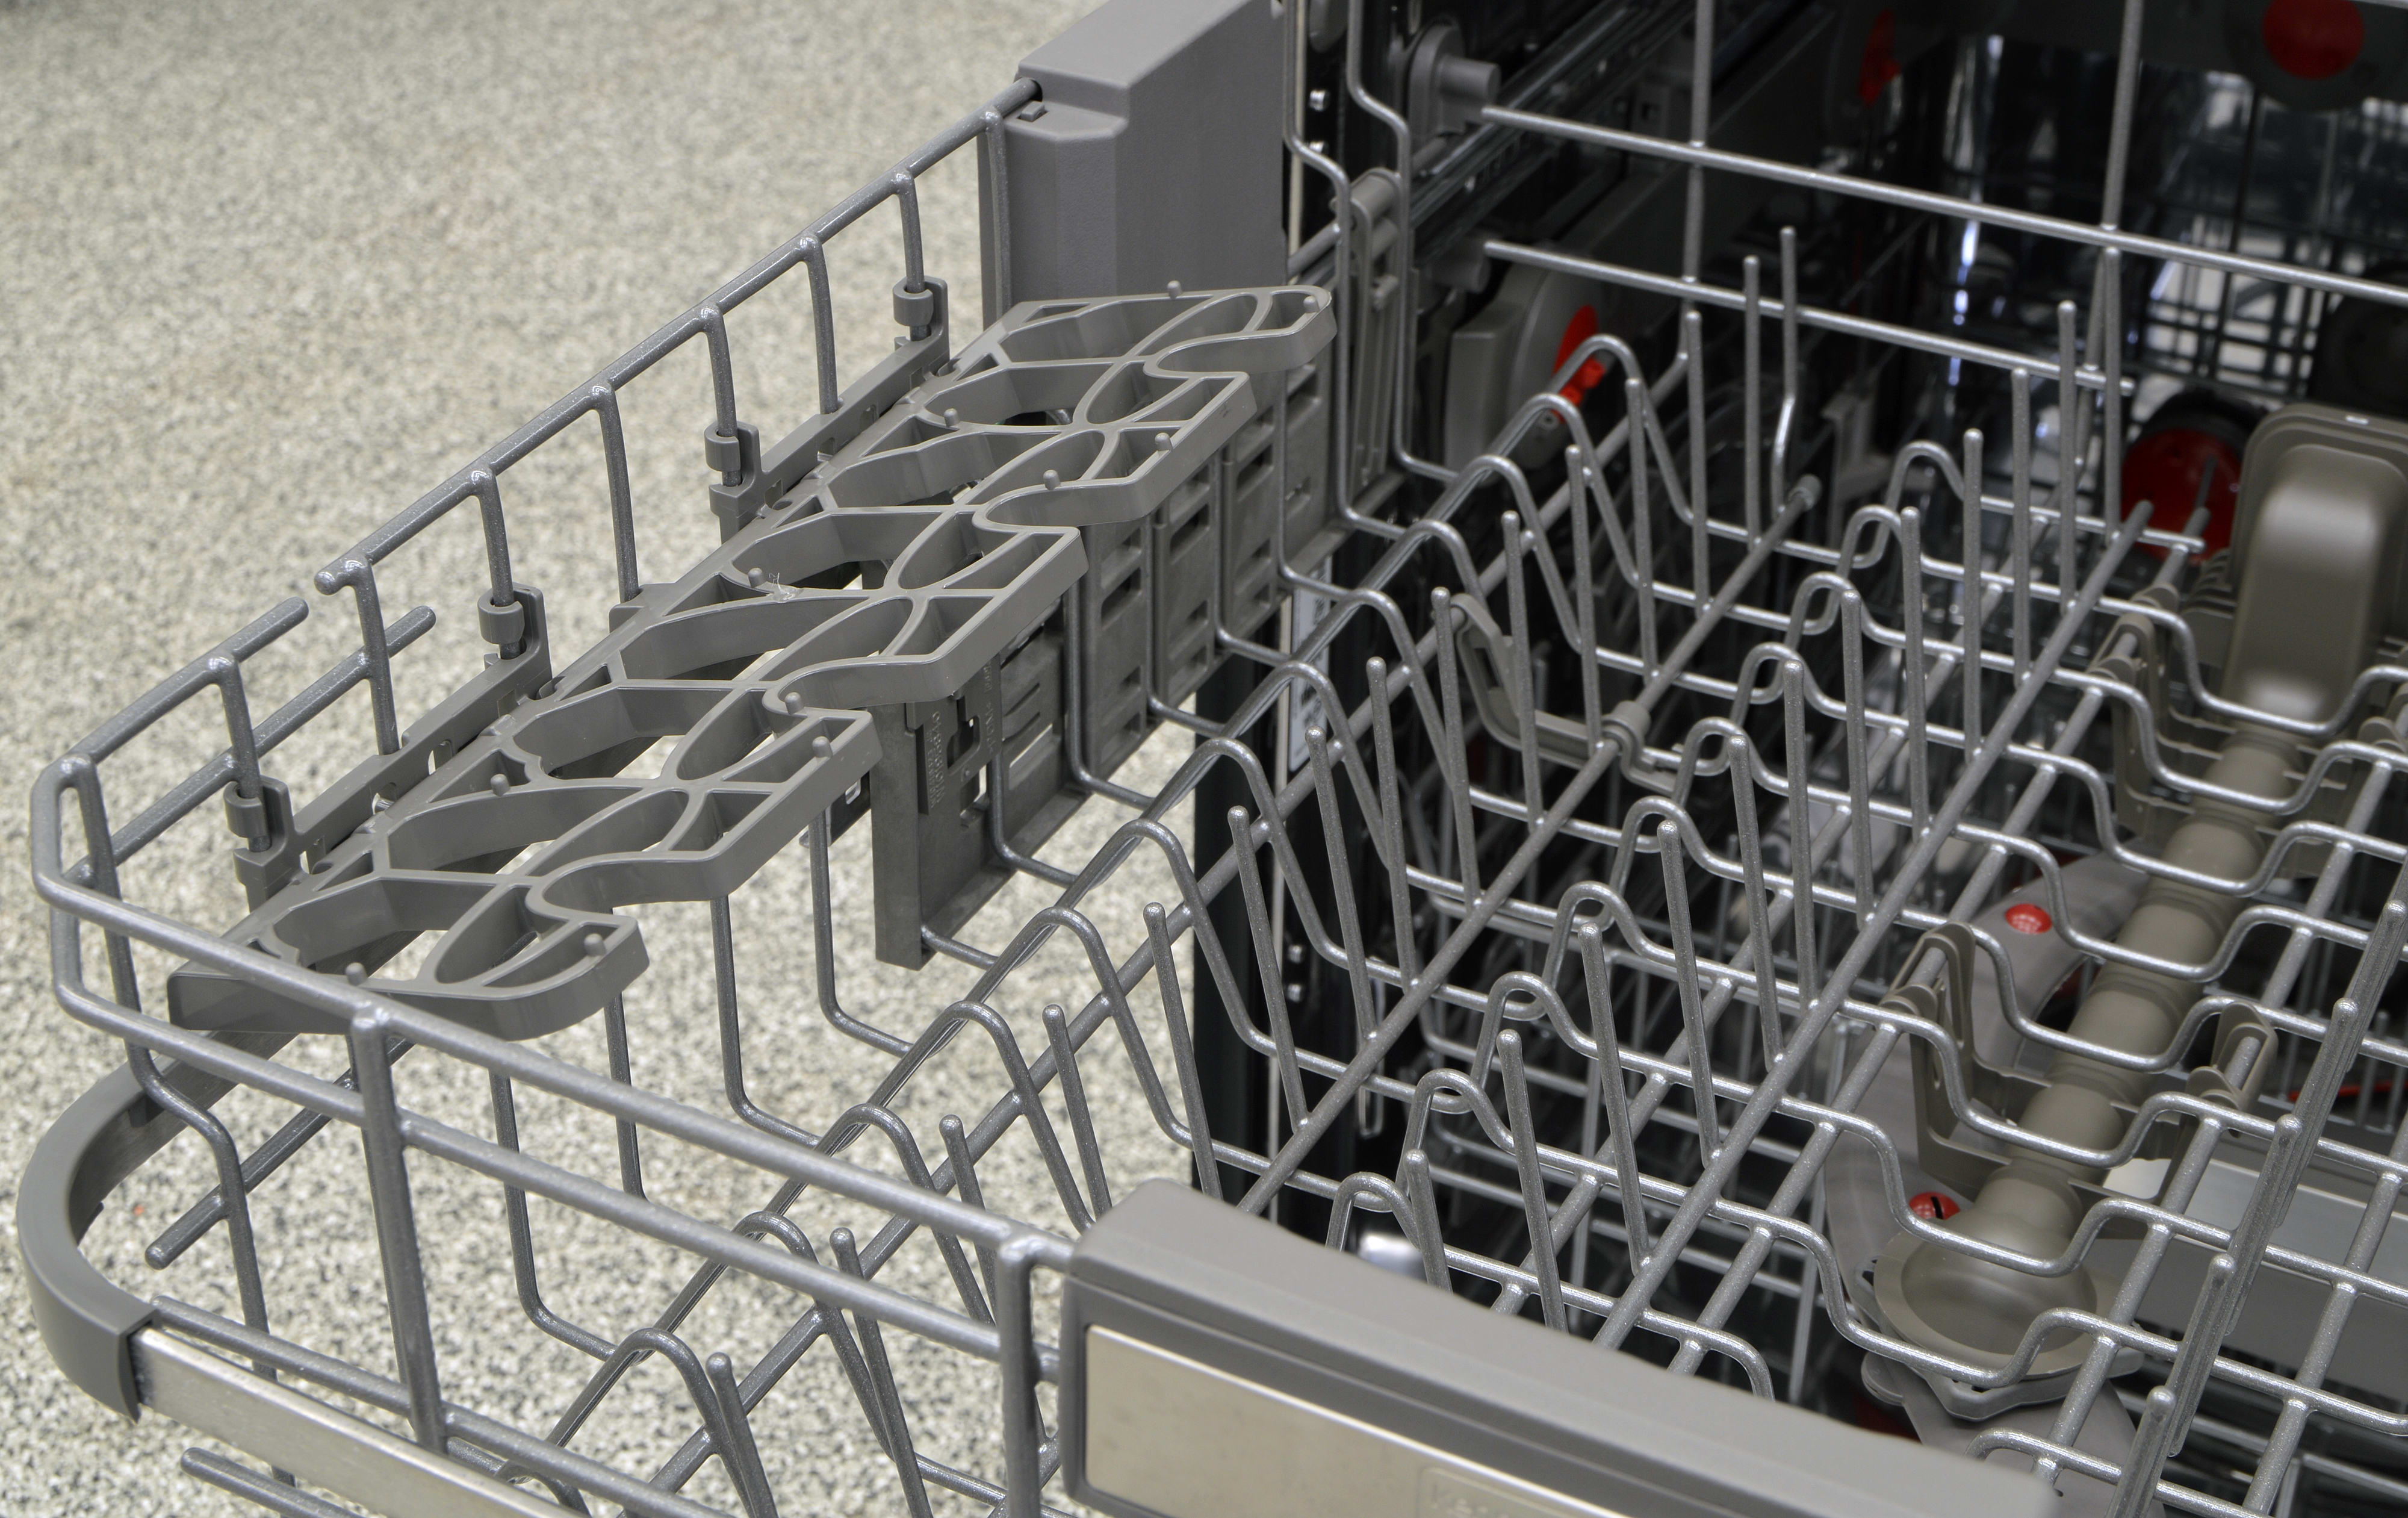 A simple fold-down shelf on the upper rack